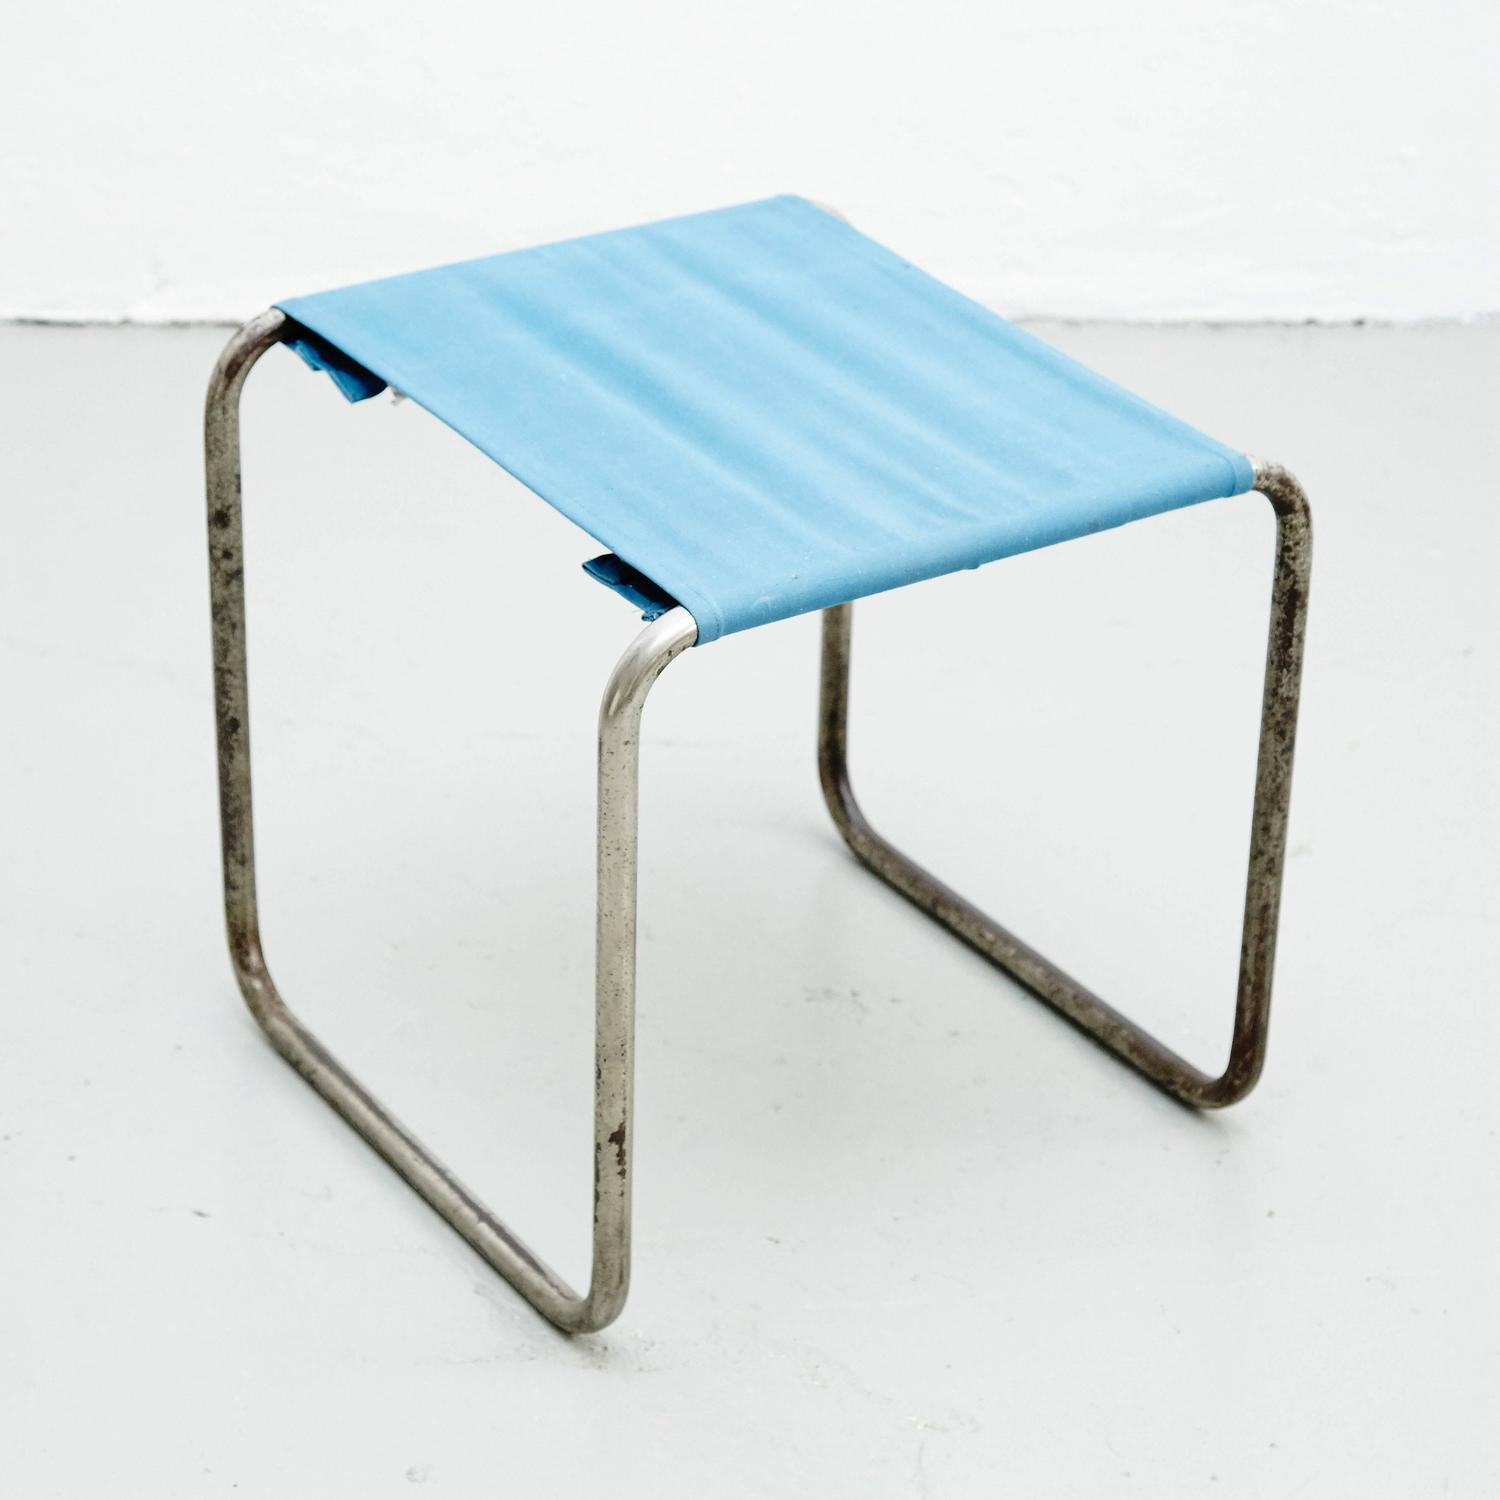 marcel breuer b9t stool for thonet circa 1930 for sale at 1stdibs. Black Bedroom Furniture Sets. Home Design Ideas